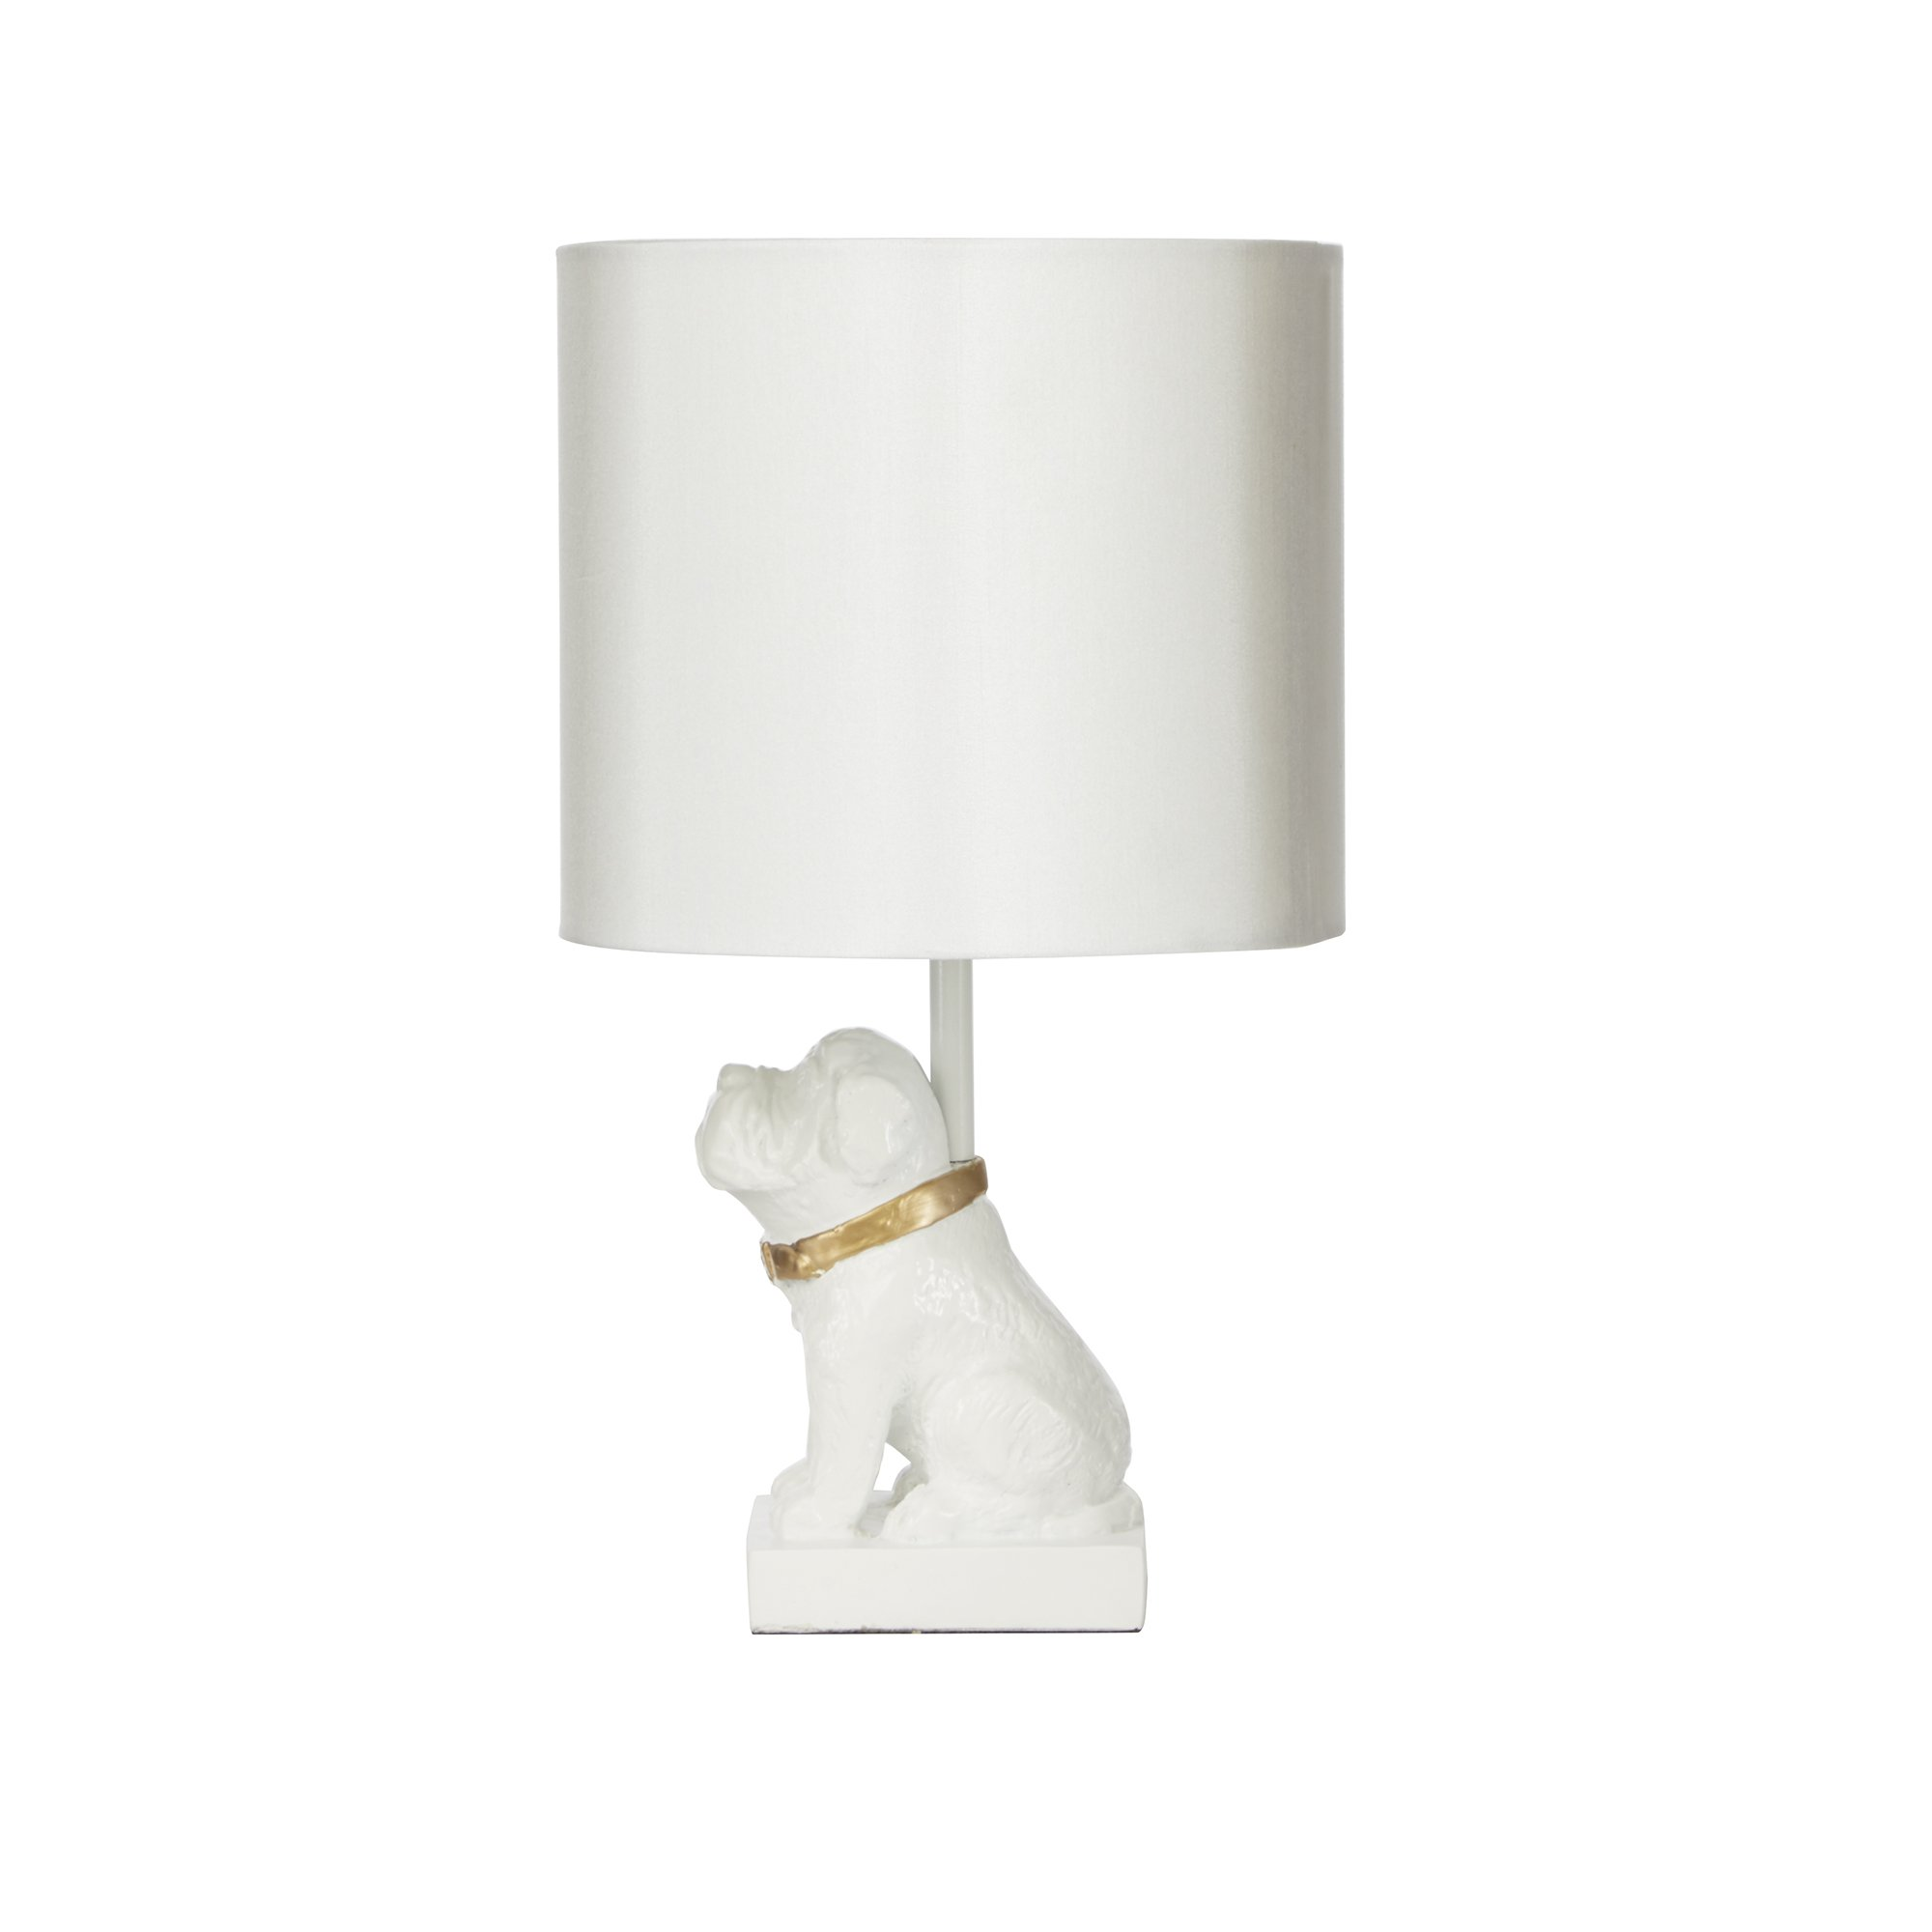 Silverwood CPLT1148 Gold Accented Dog Resin Table Lamp, 15'' H, White